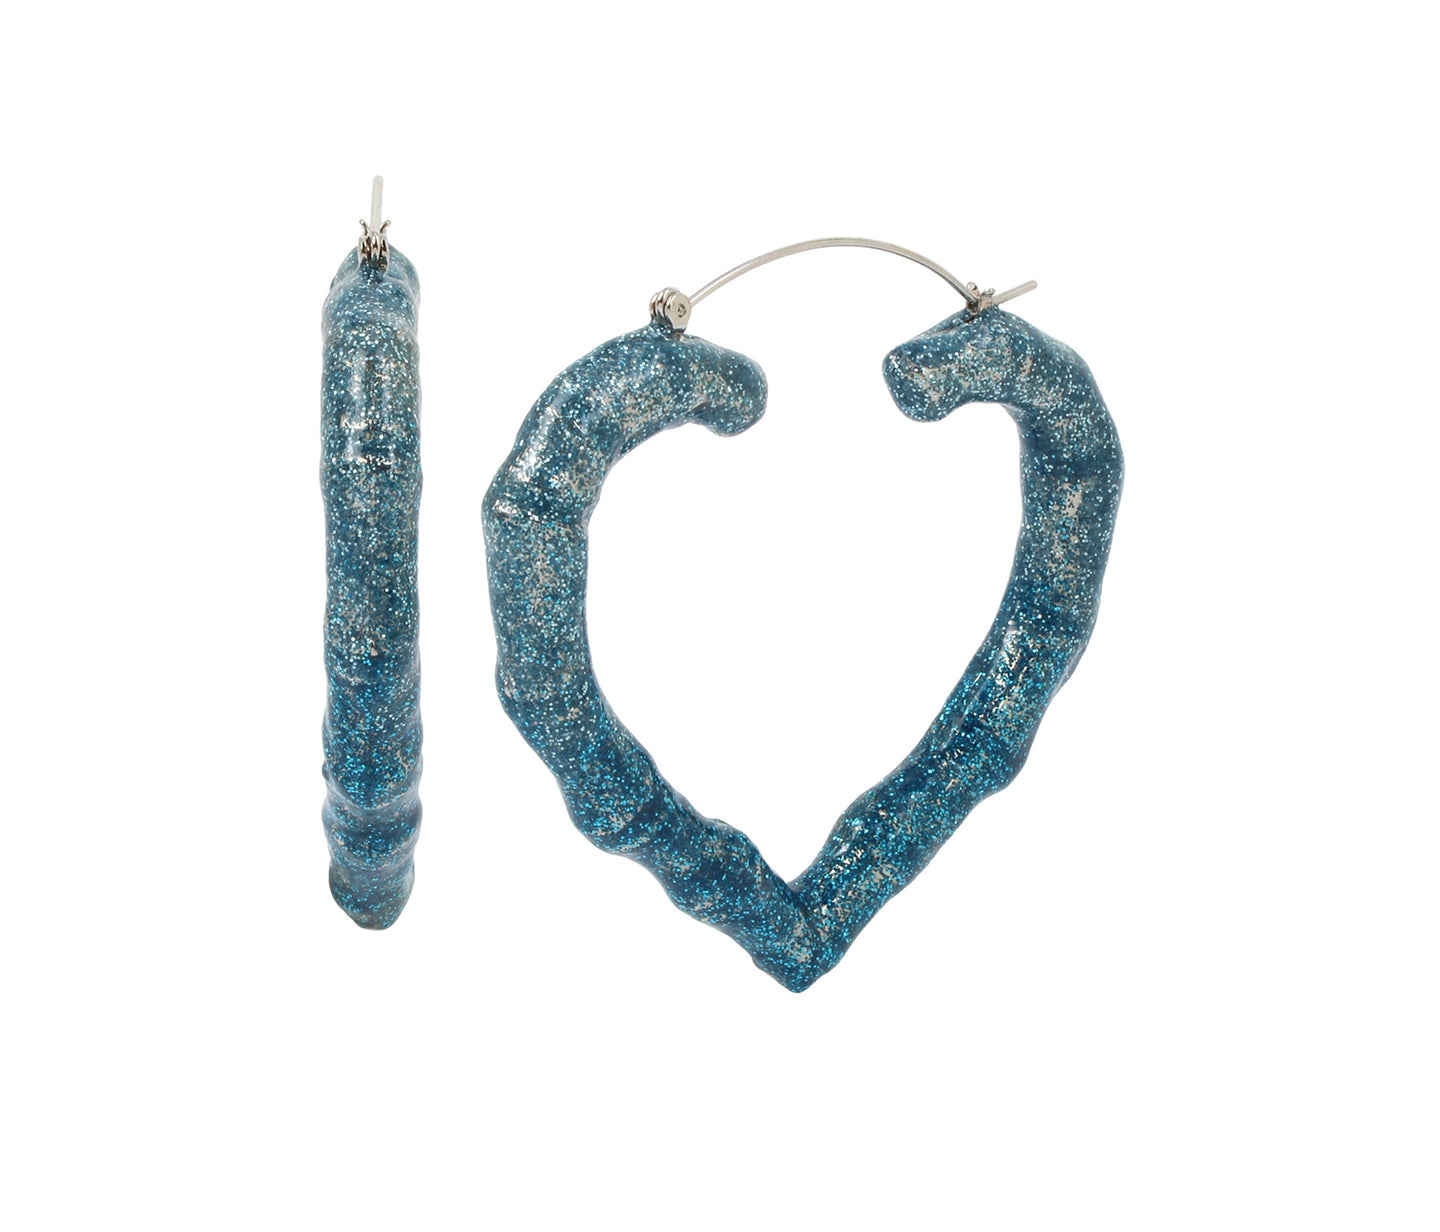 BETSEYS OMBRE HEART HOOP EARRINGS TEAL - JEWELRY - Betsey Johnson